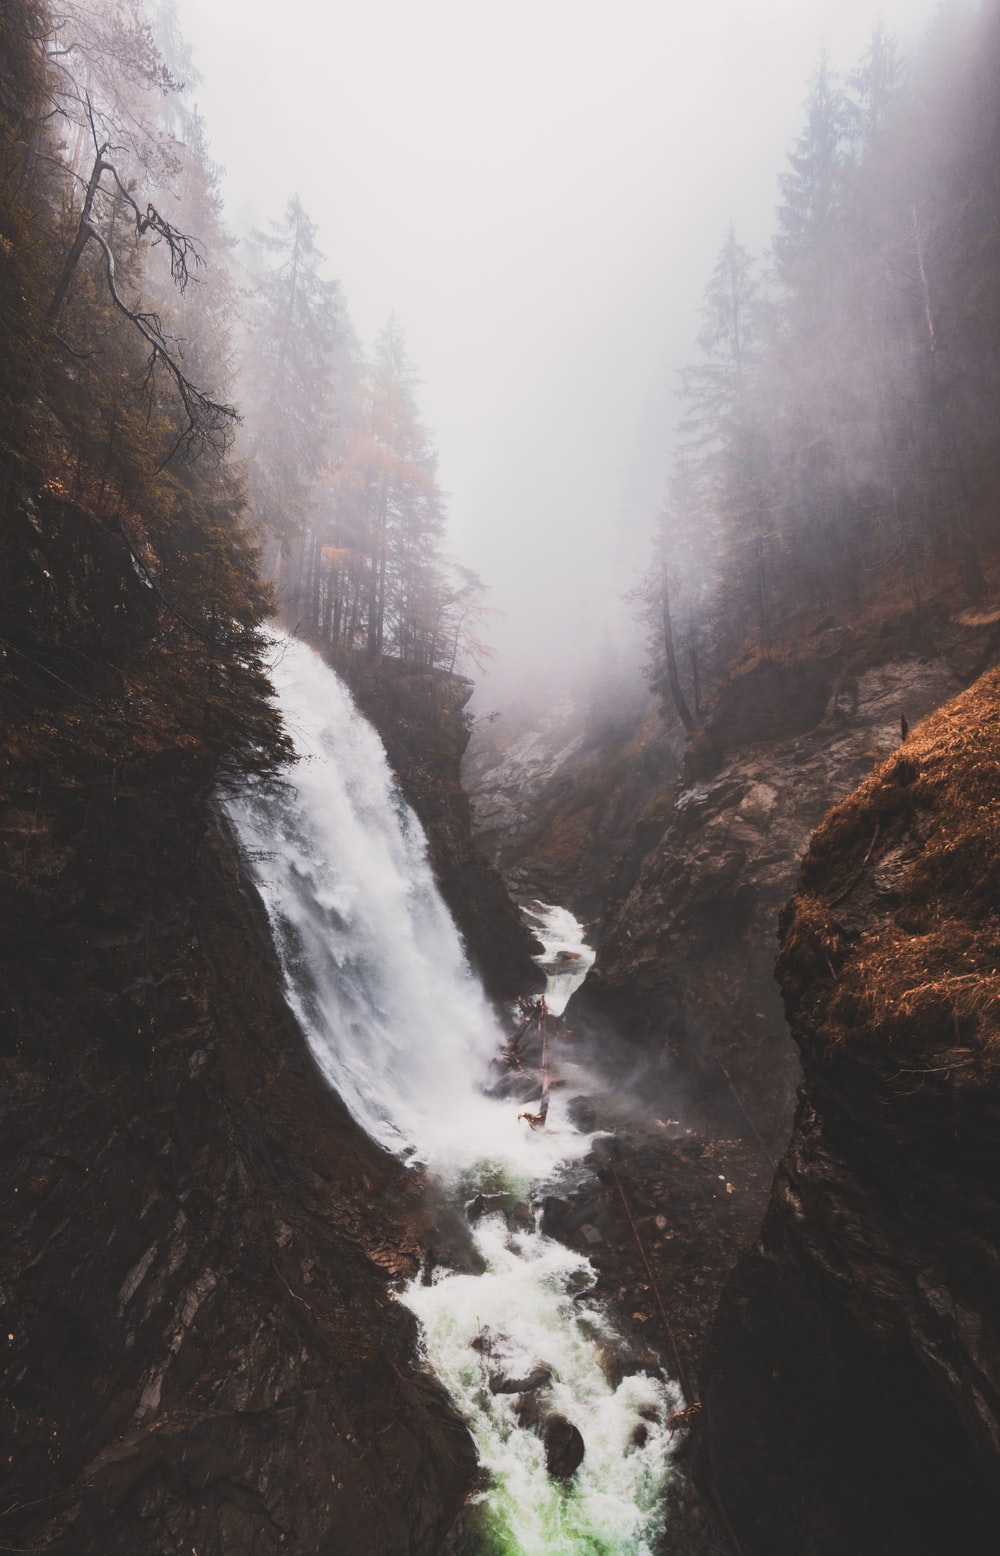 fog surrounding forest with waterfalls